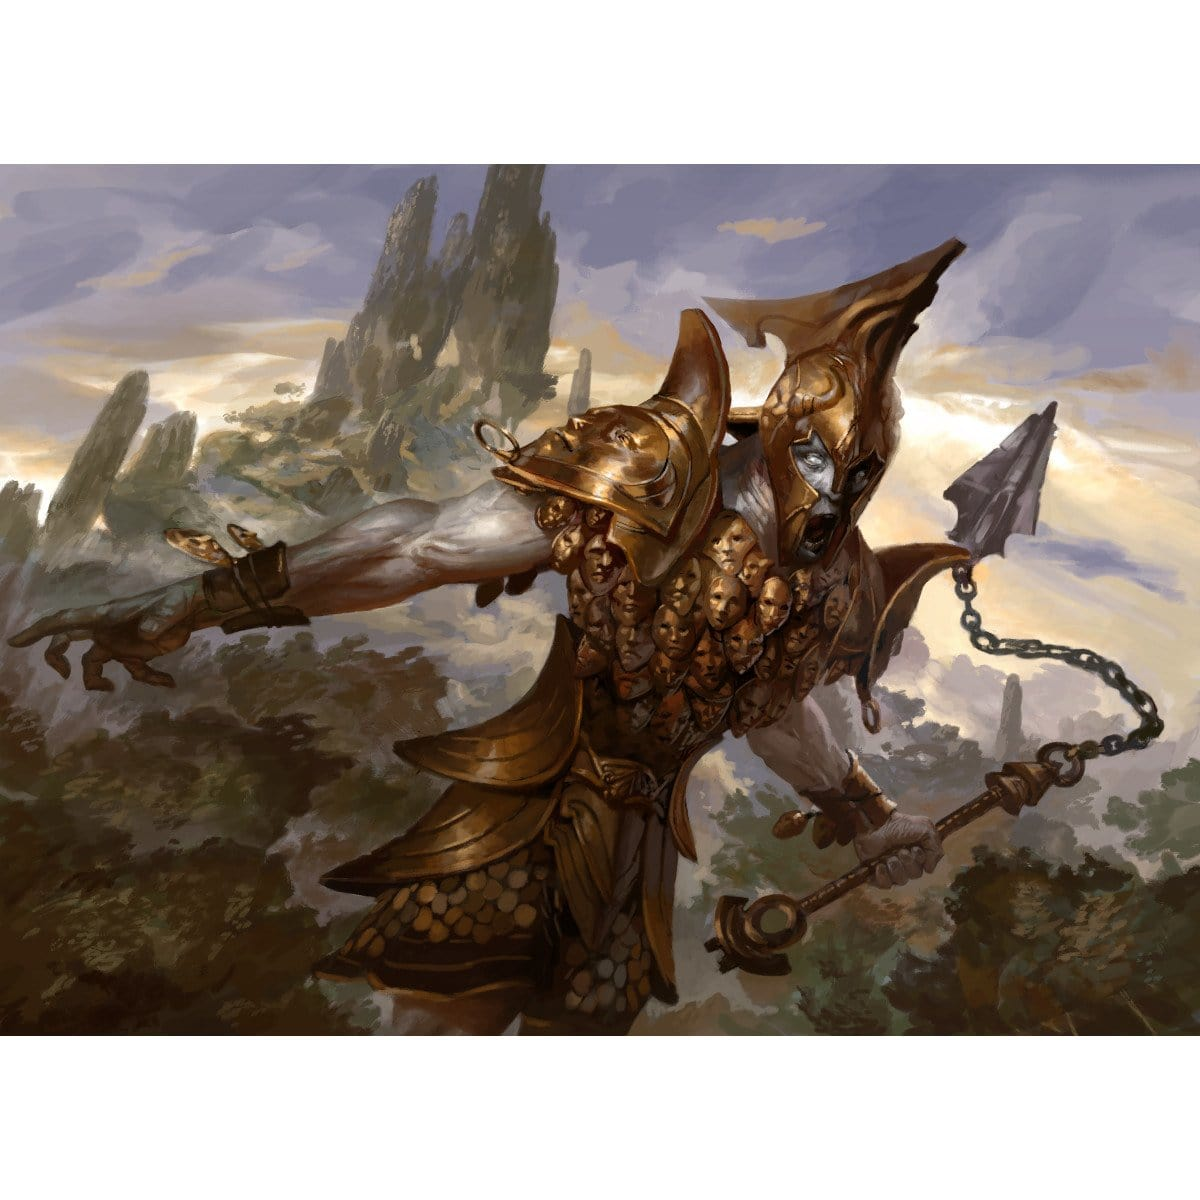 Erebos's Titan Print - Print - Original Magic Art - Accessories for Magic the Gathering and other card games